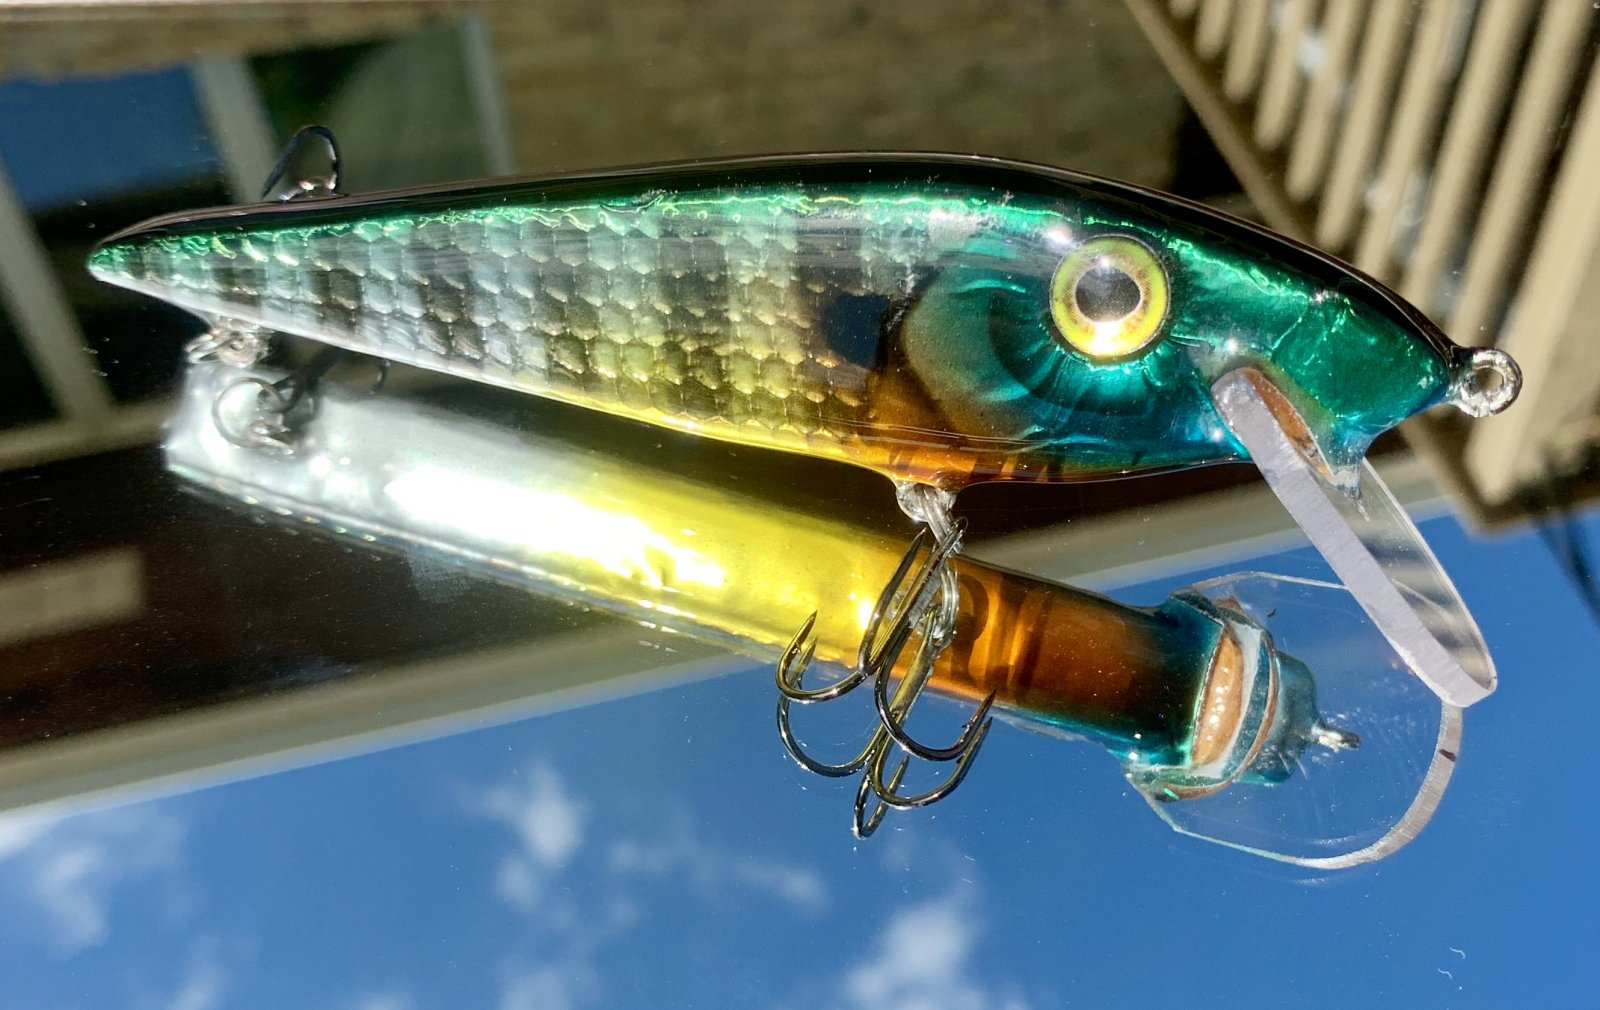 Foiled blue gill